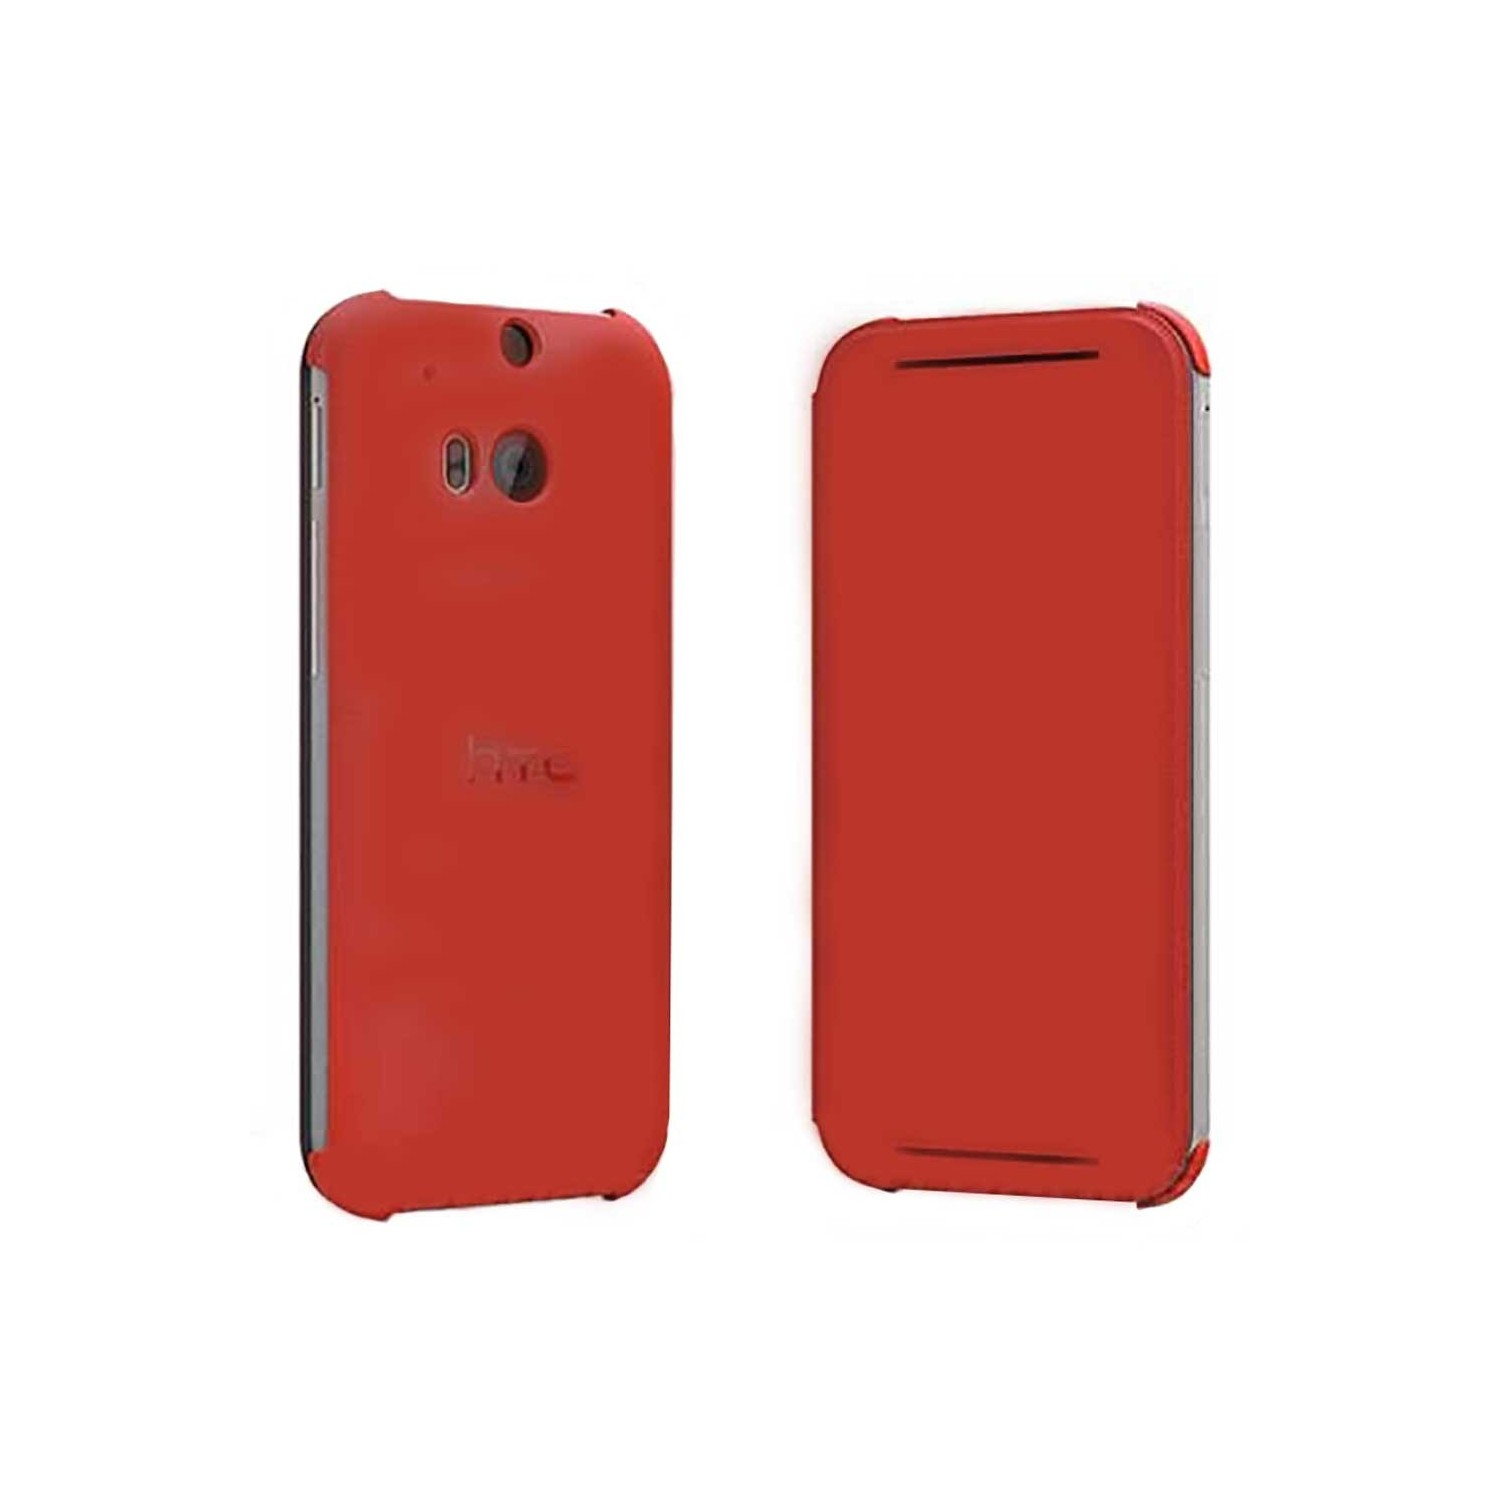 Case - Flip Case HTC OEM for HTC One M8 red